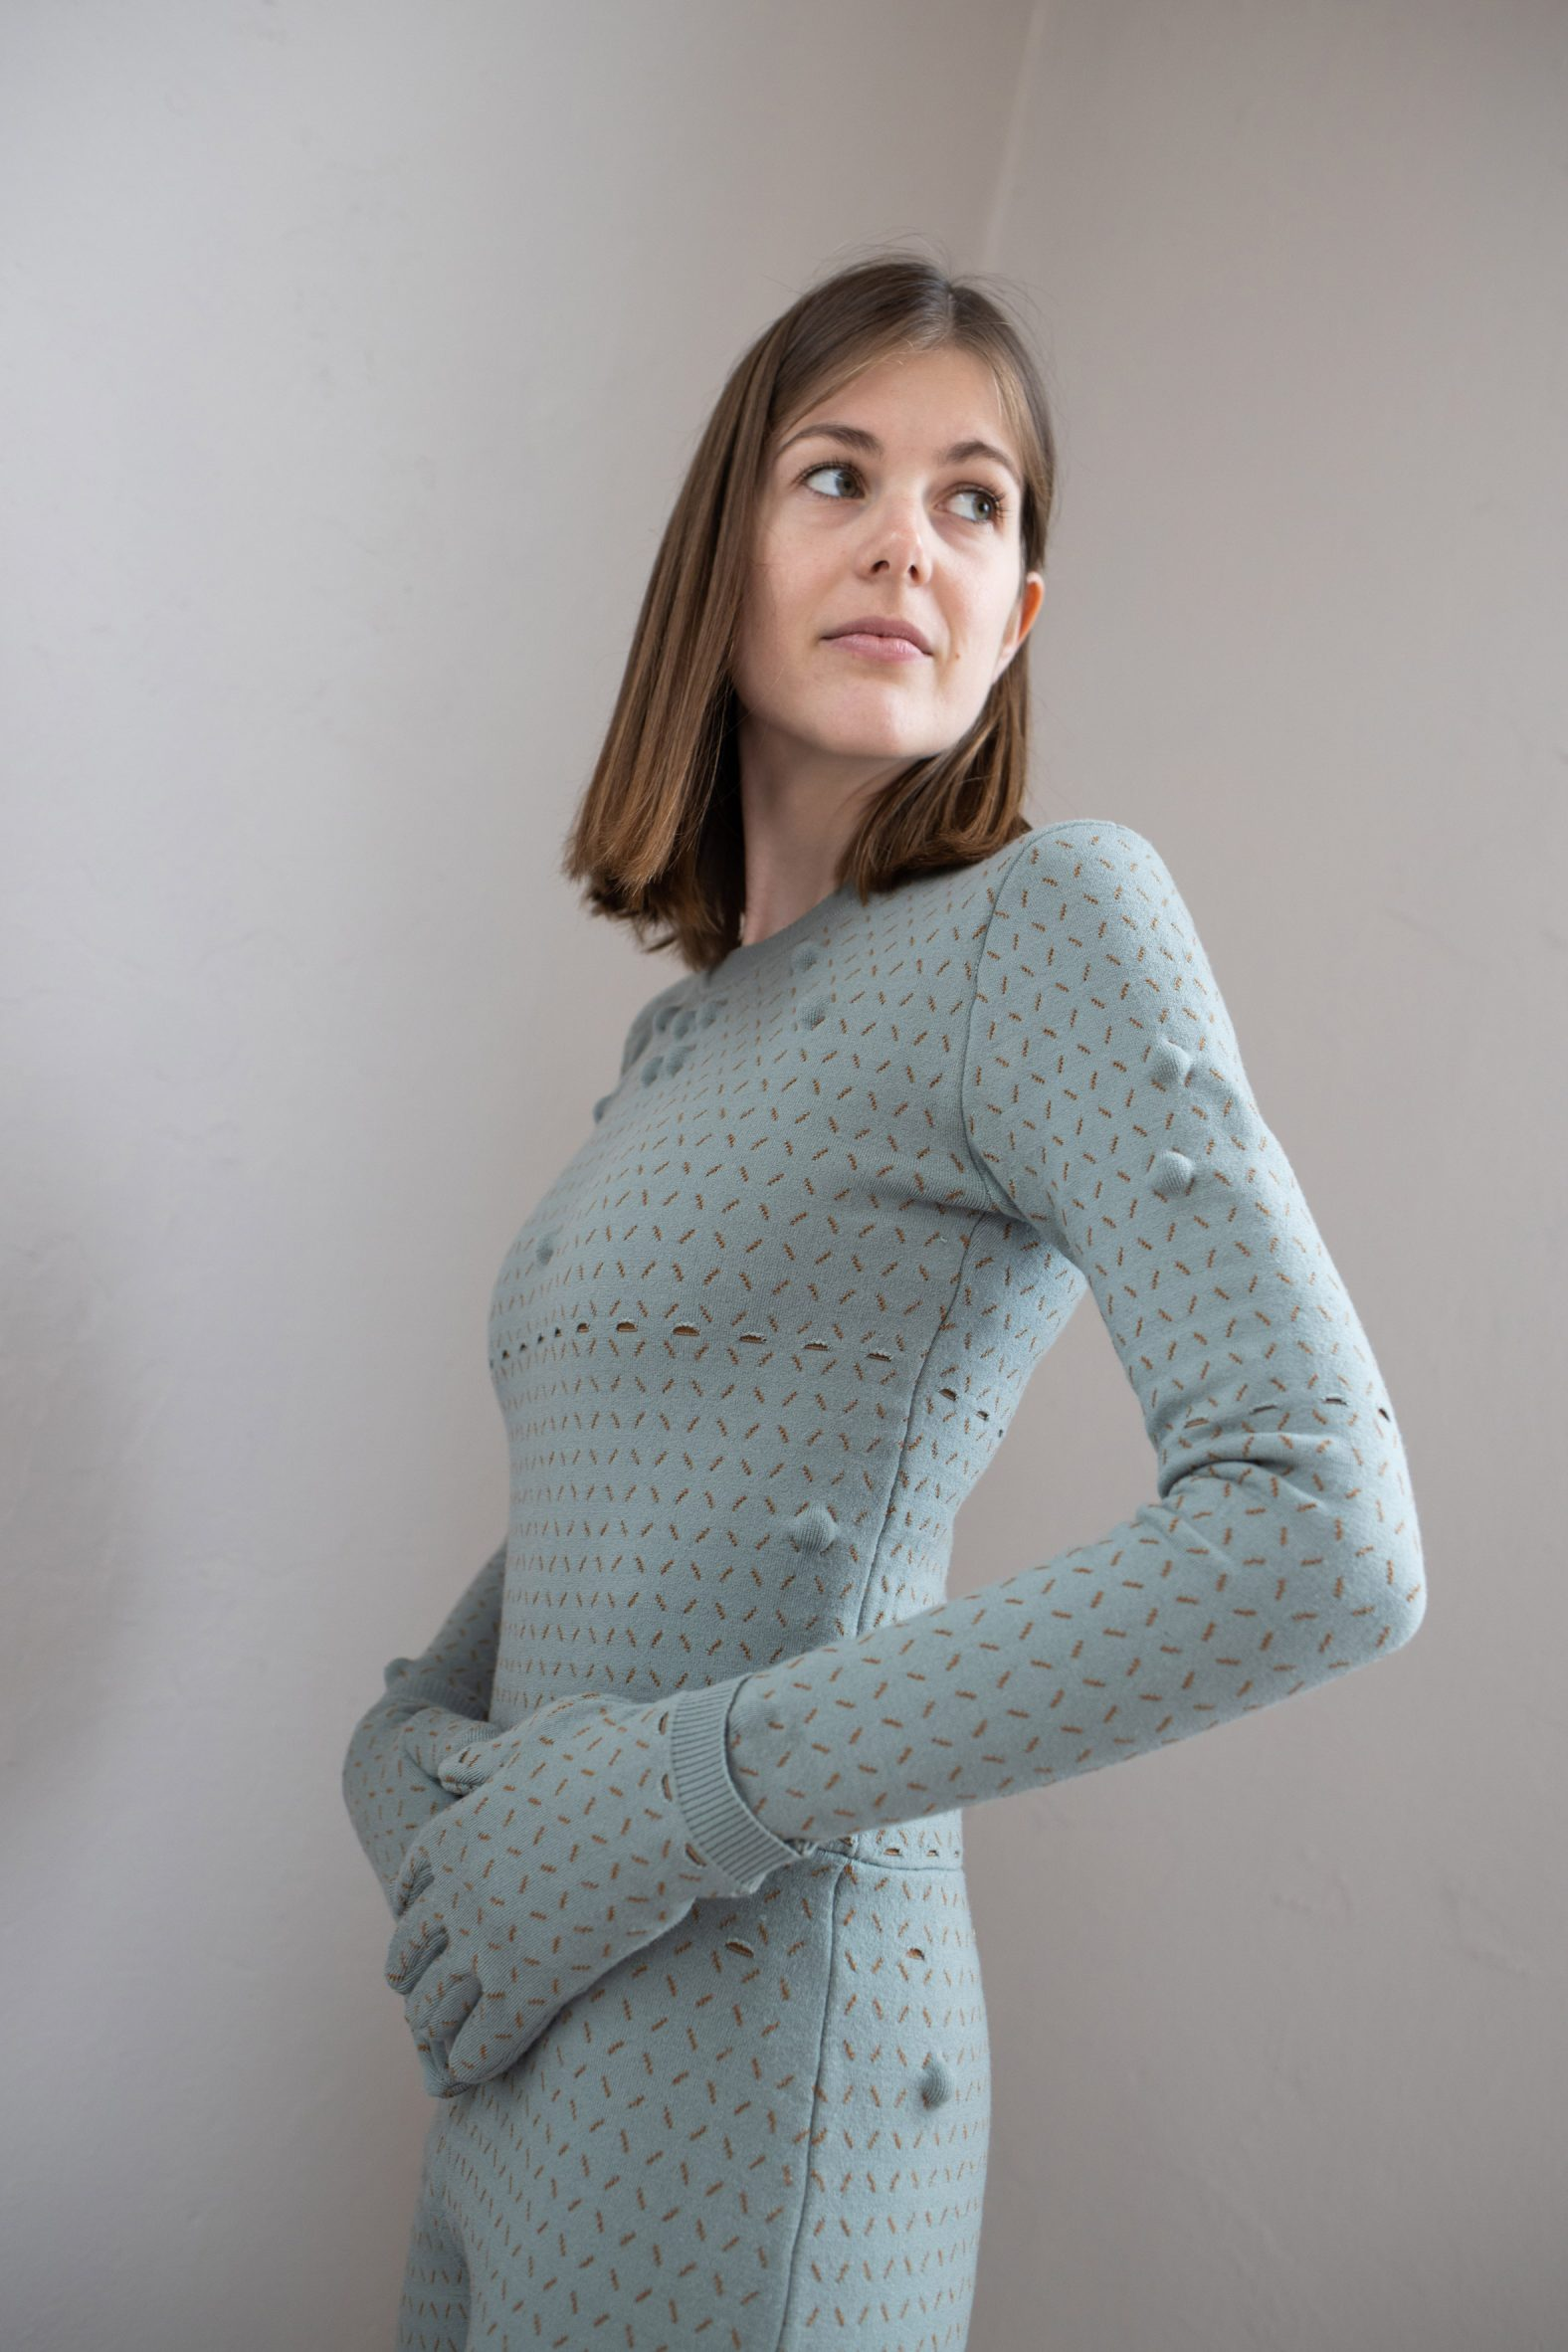 Woman wearing light teal bodysuit with matching gloves with a grid pattern stitched into it and massage balls inside the grid